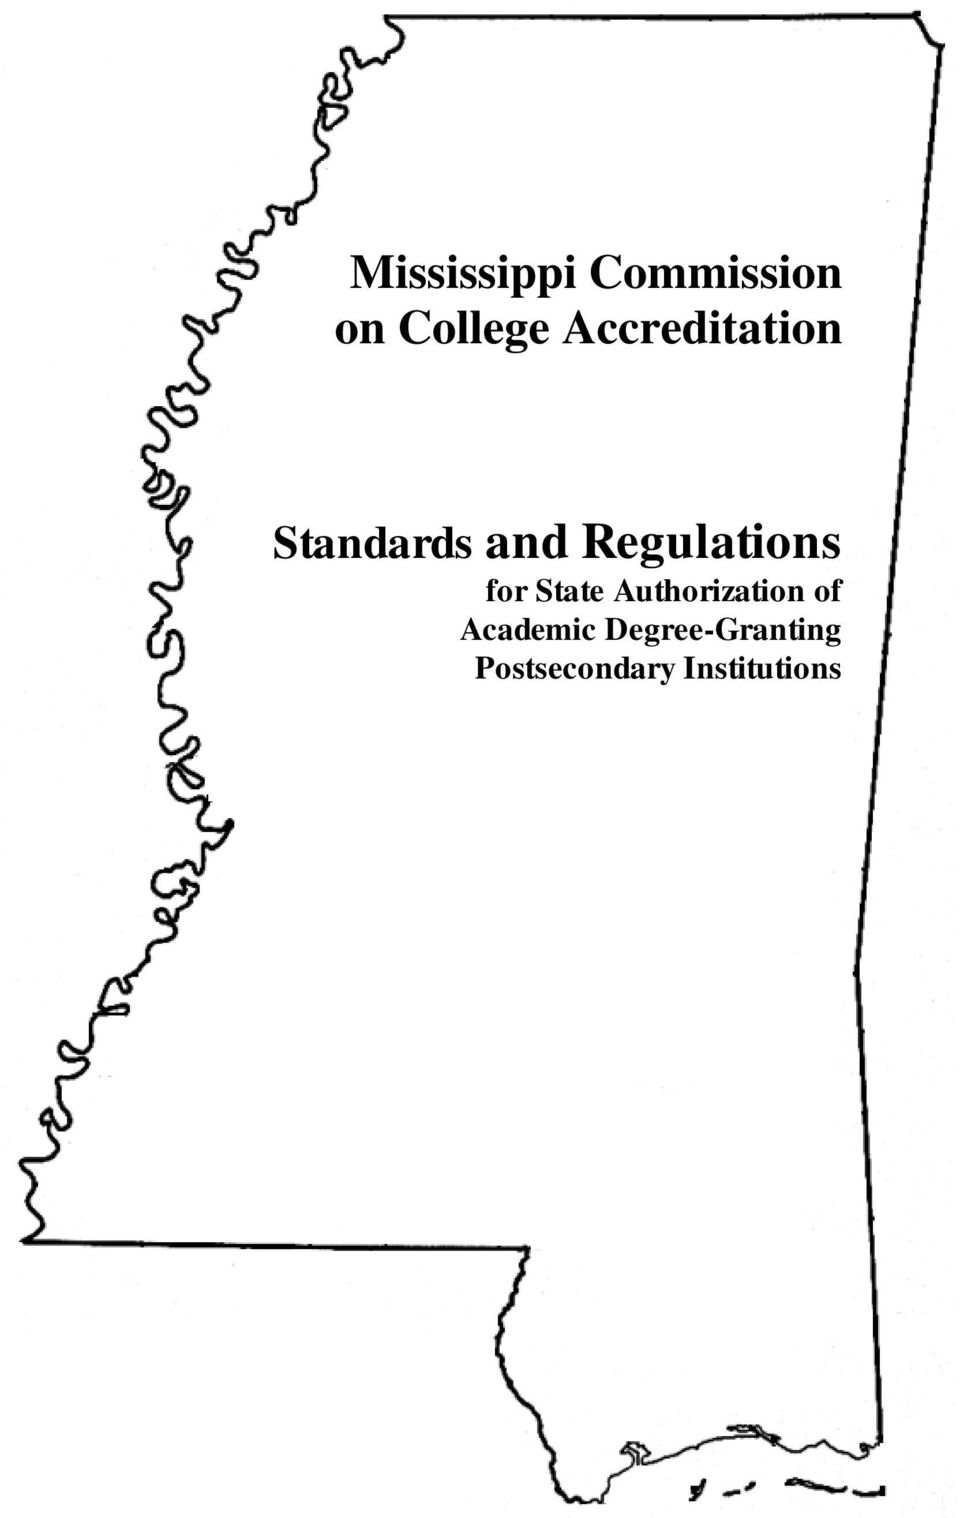 Regulations for State Authorization